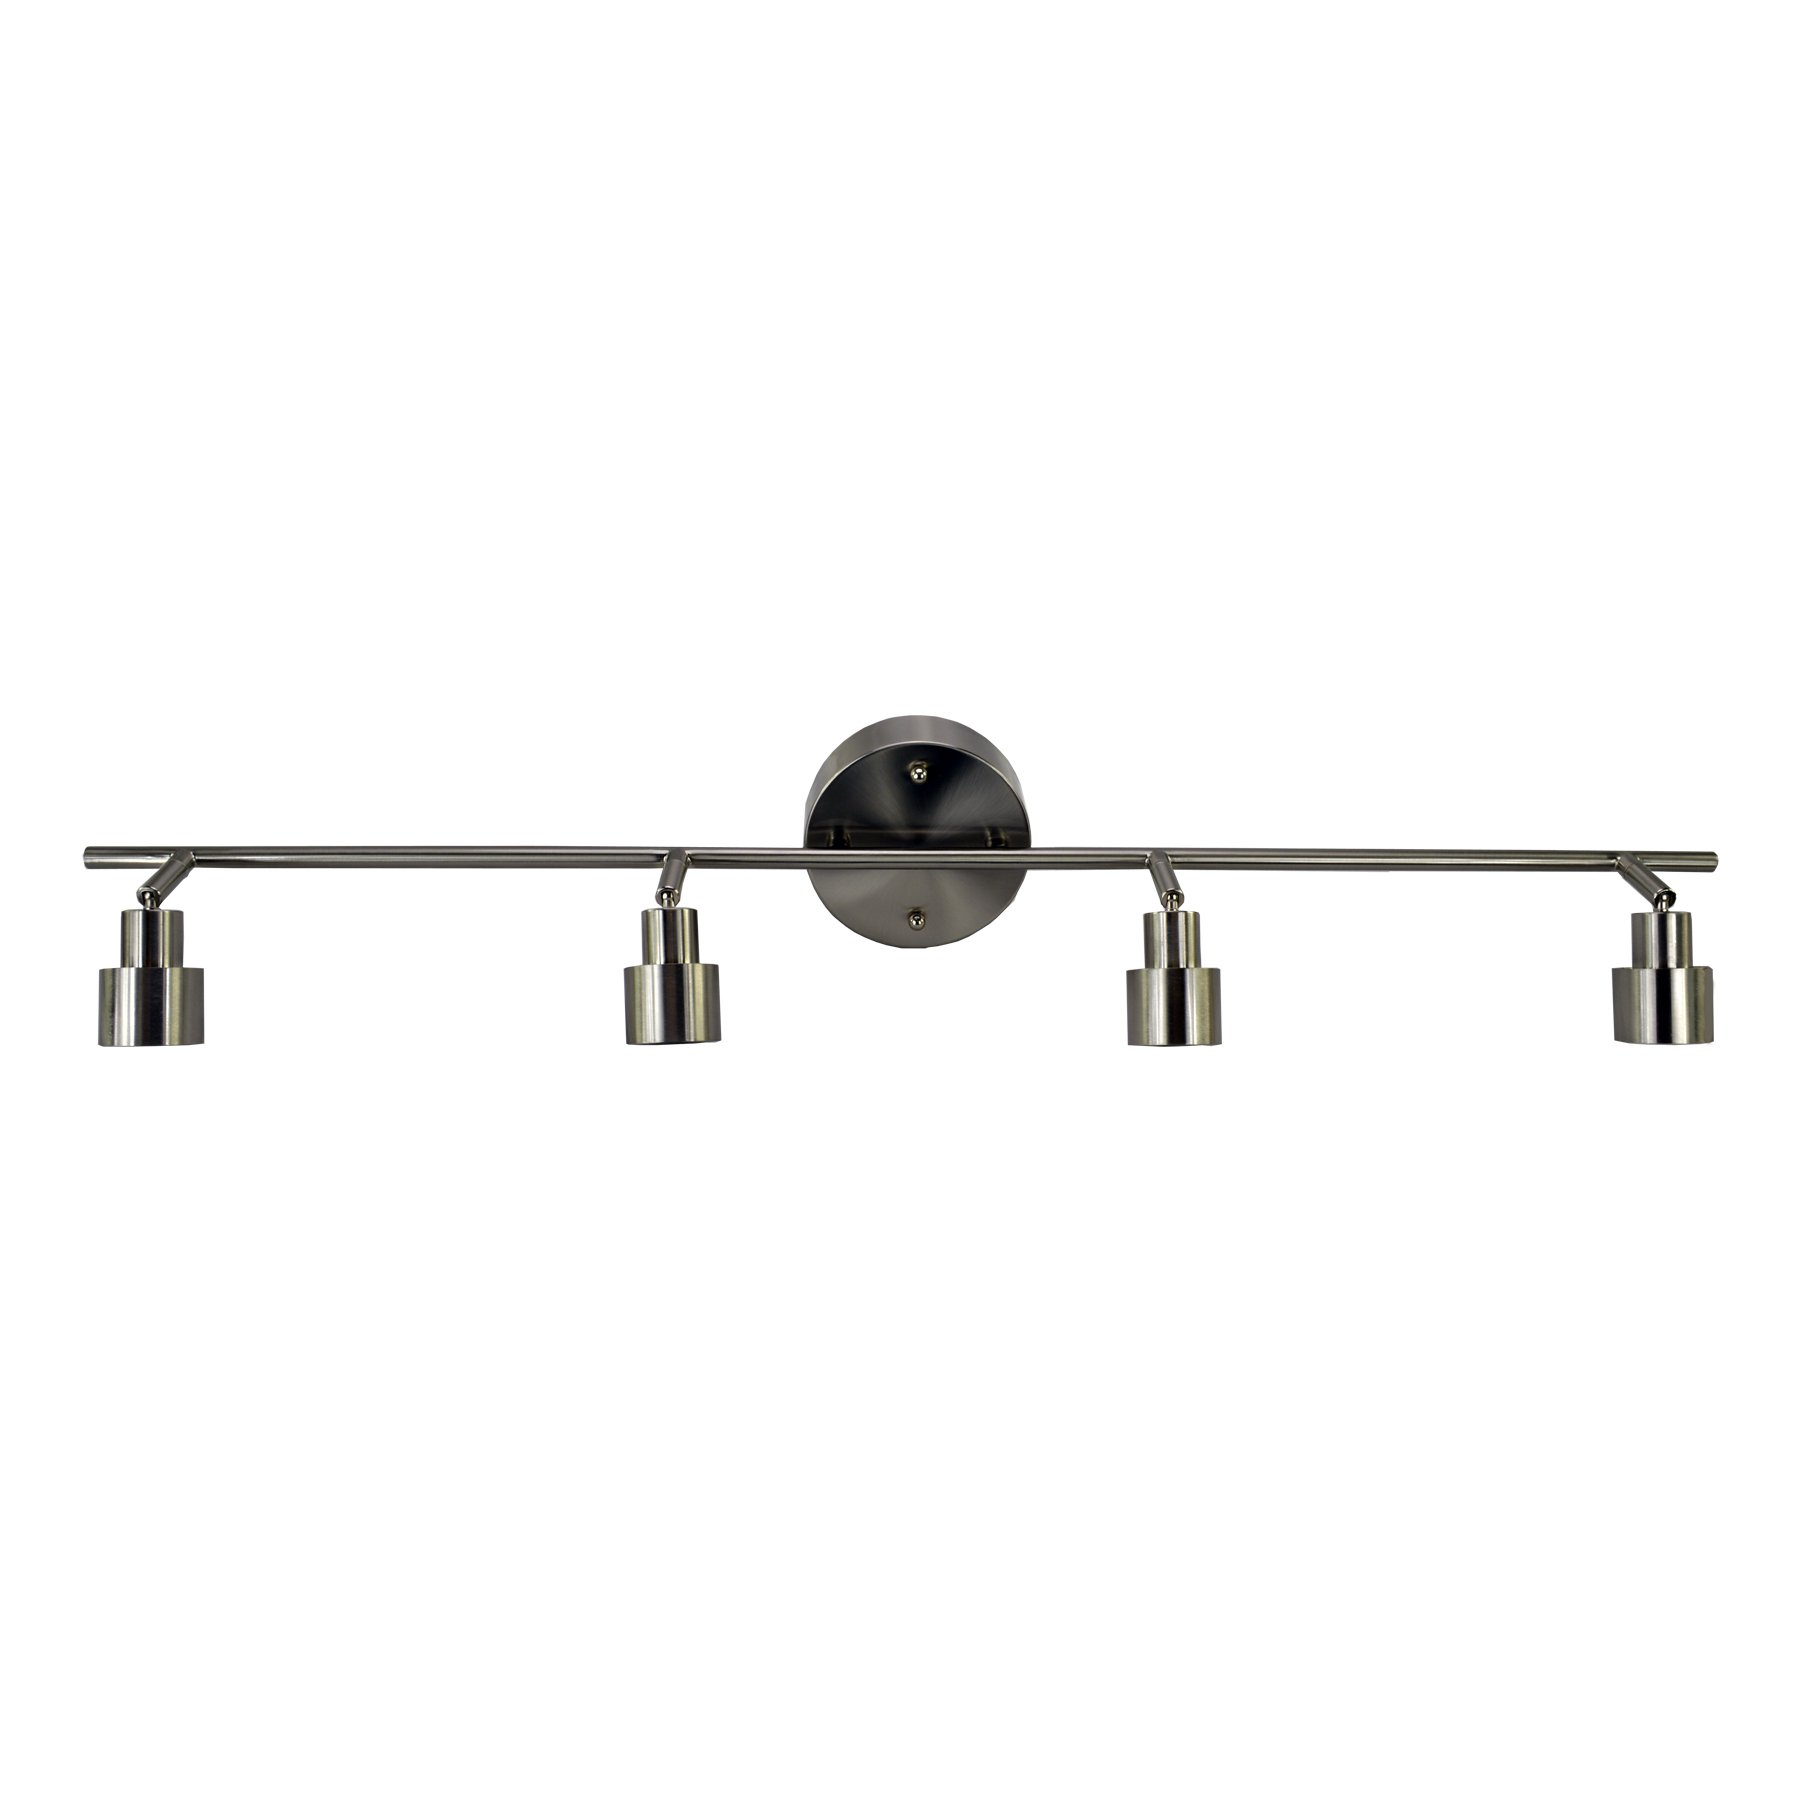 HomeSelects 7521 22W Led Dimmable 4 Light Track Light - Brushed Nickel 22W Led Dimmable 4 Light Track Light - Brushed Nickelbrushed Nickel